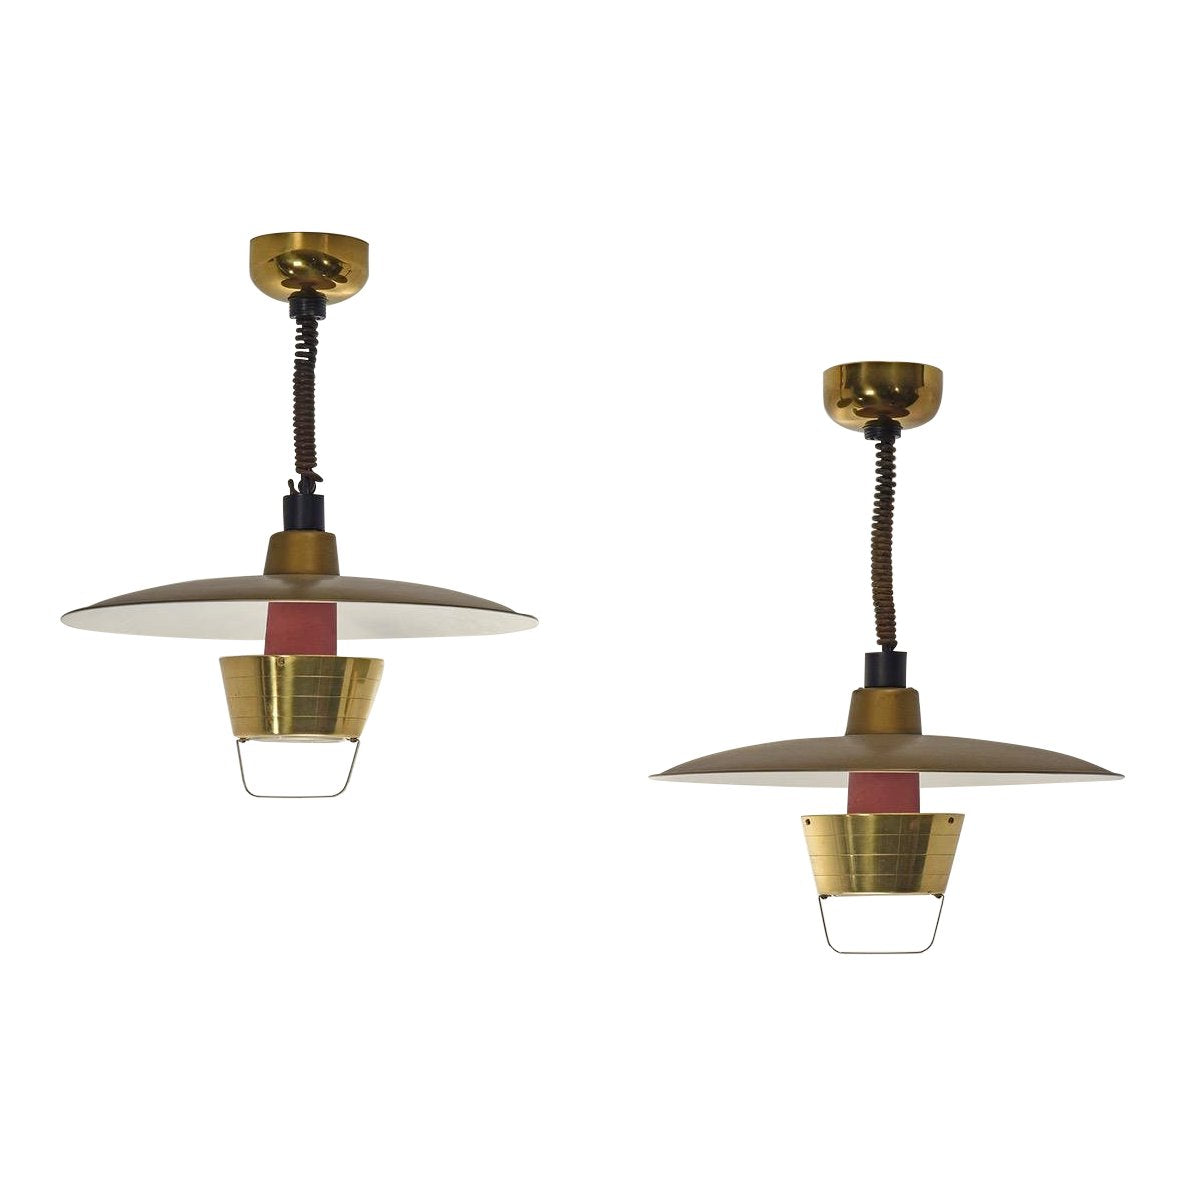 Pair of Ceiling Lights by John C. Virden Lighting Company, circa 1950's - The Space Detroit